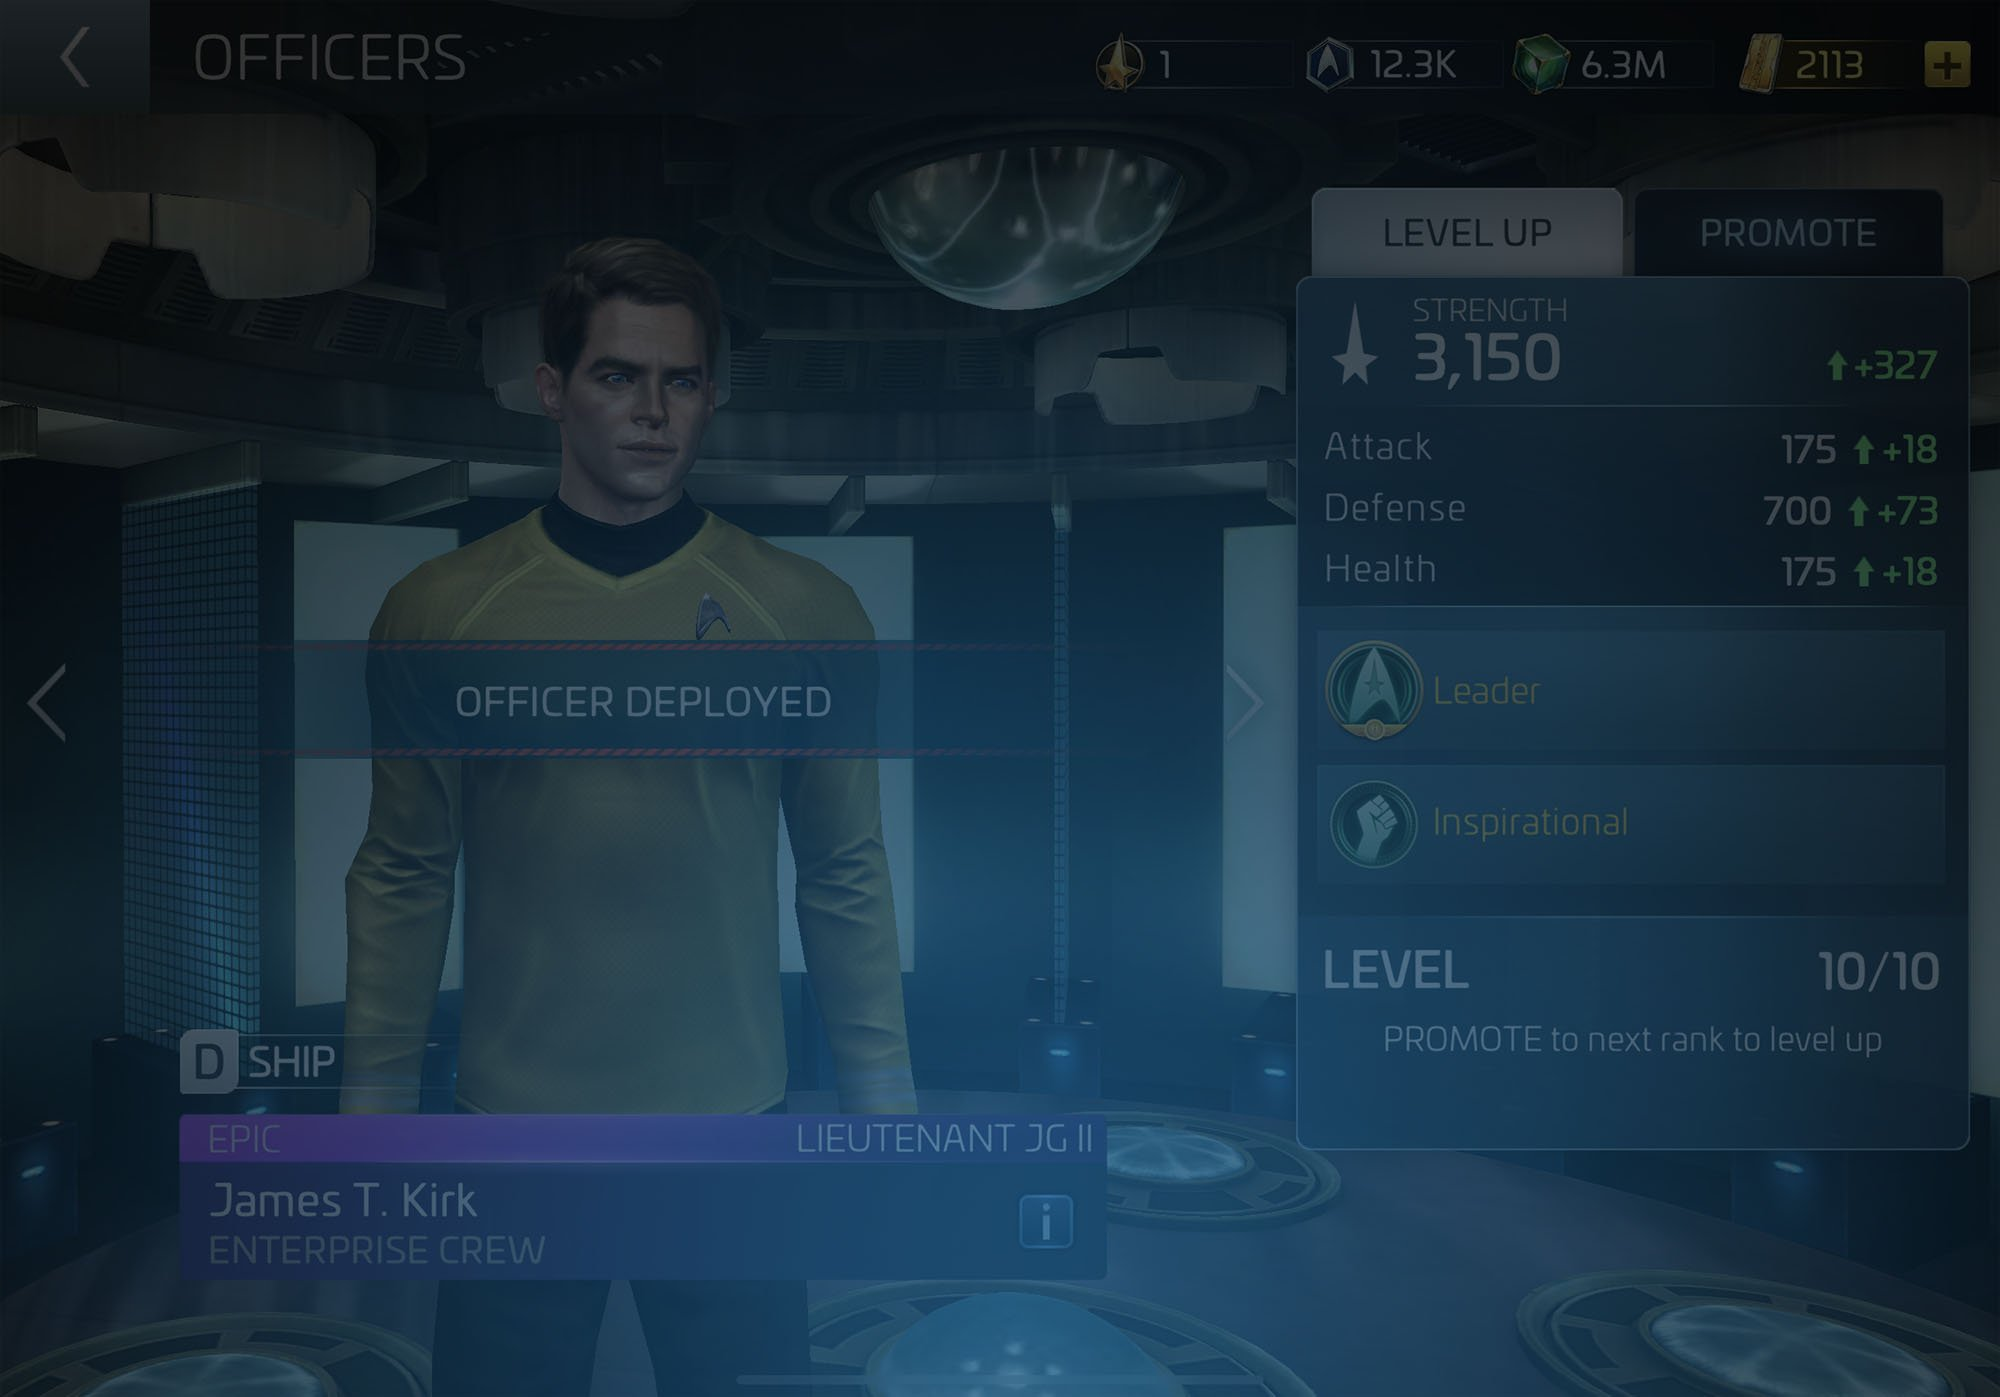 Officer James T. Kirk